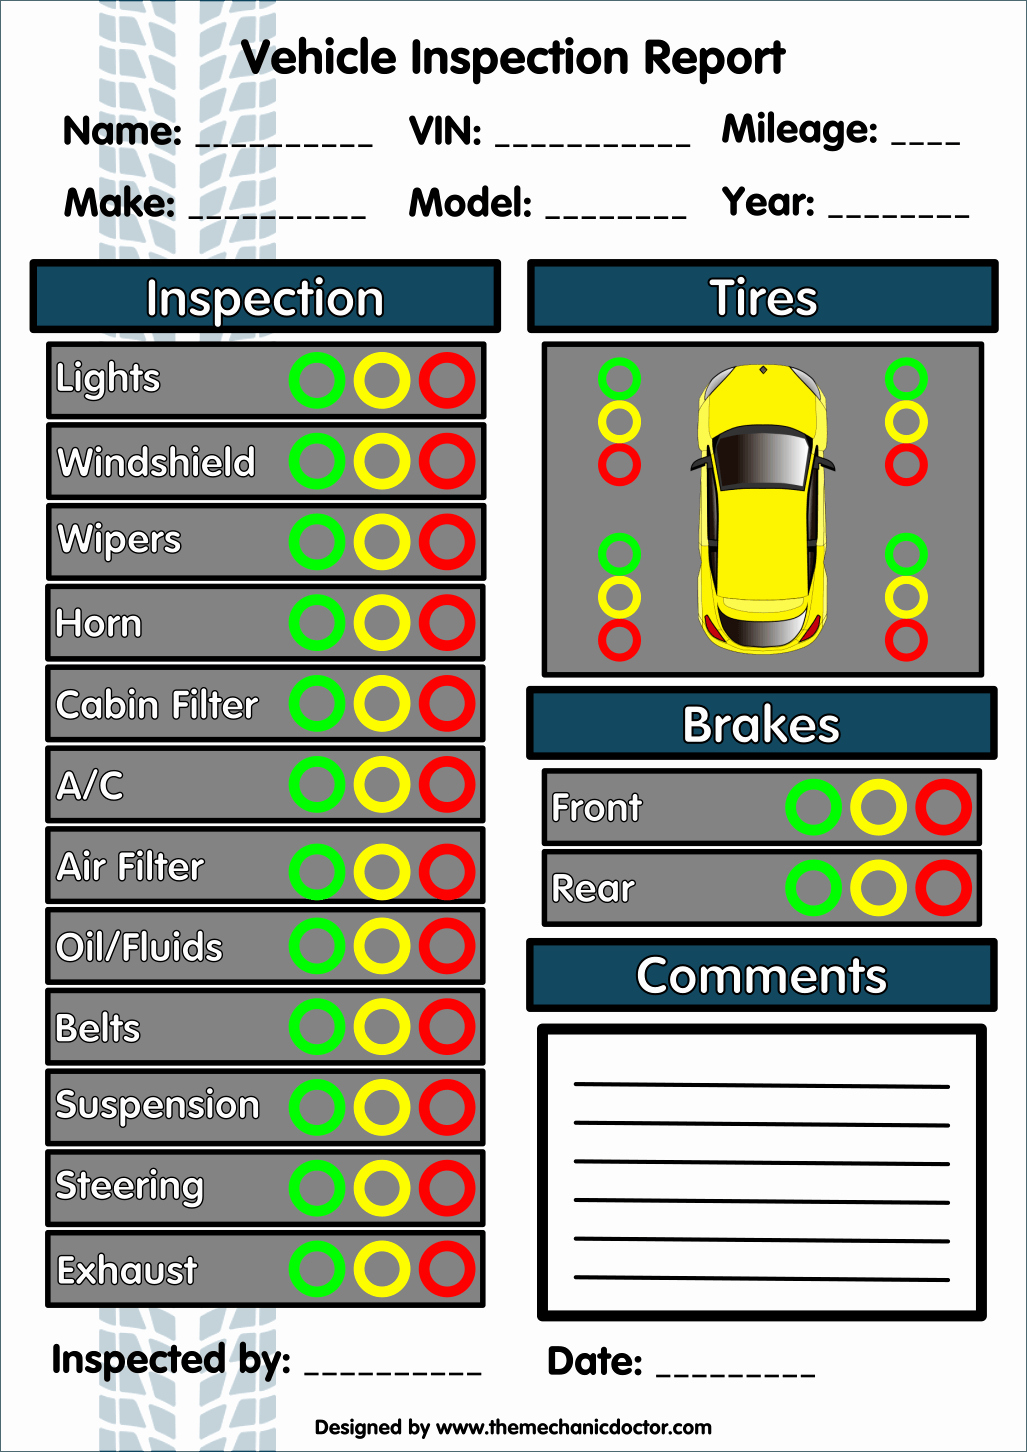 Vehicle Inspection Sheet Template Best Of Quick Inspection Report form